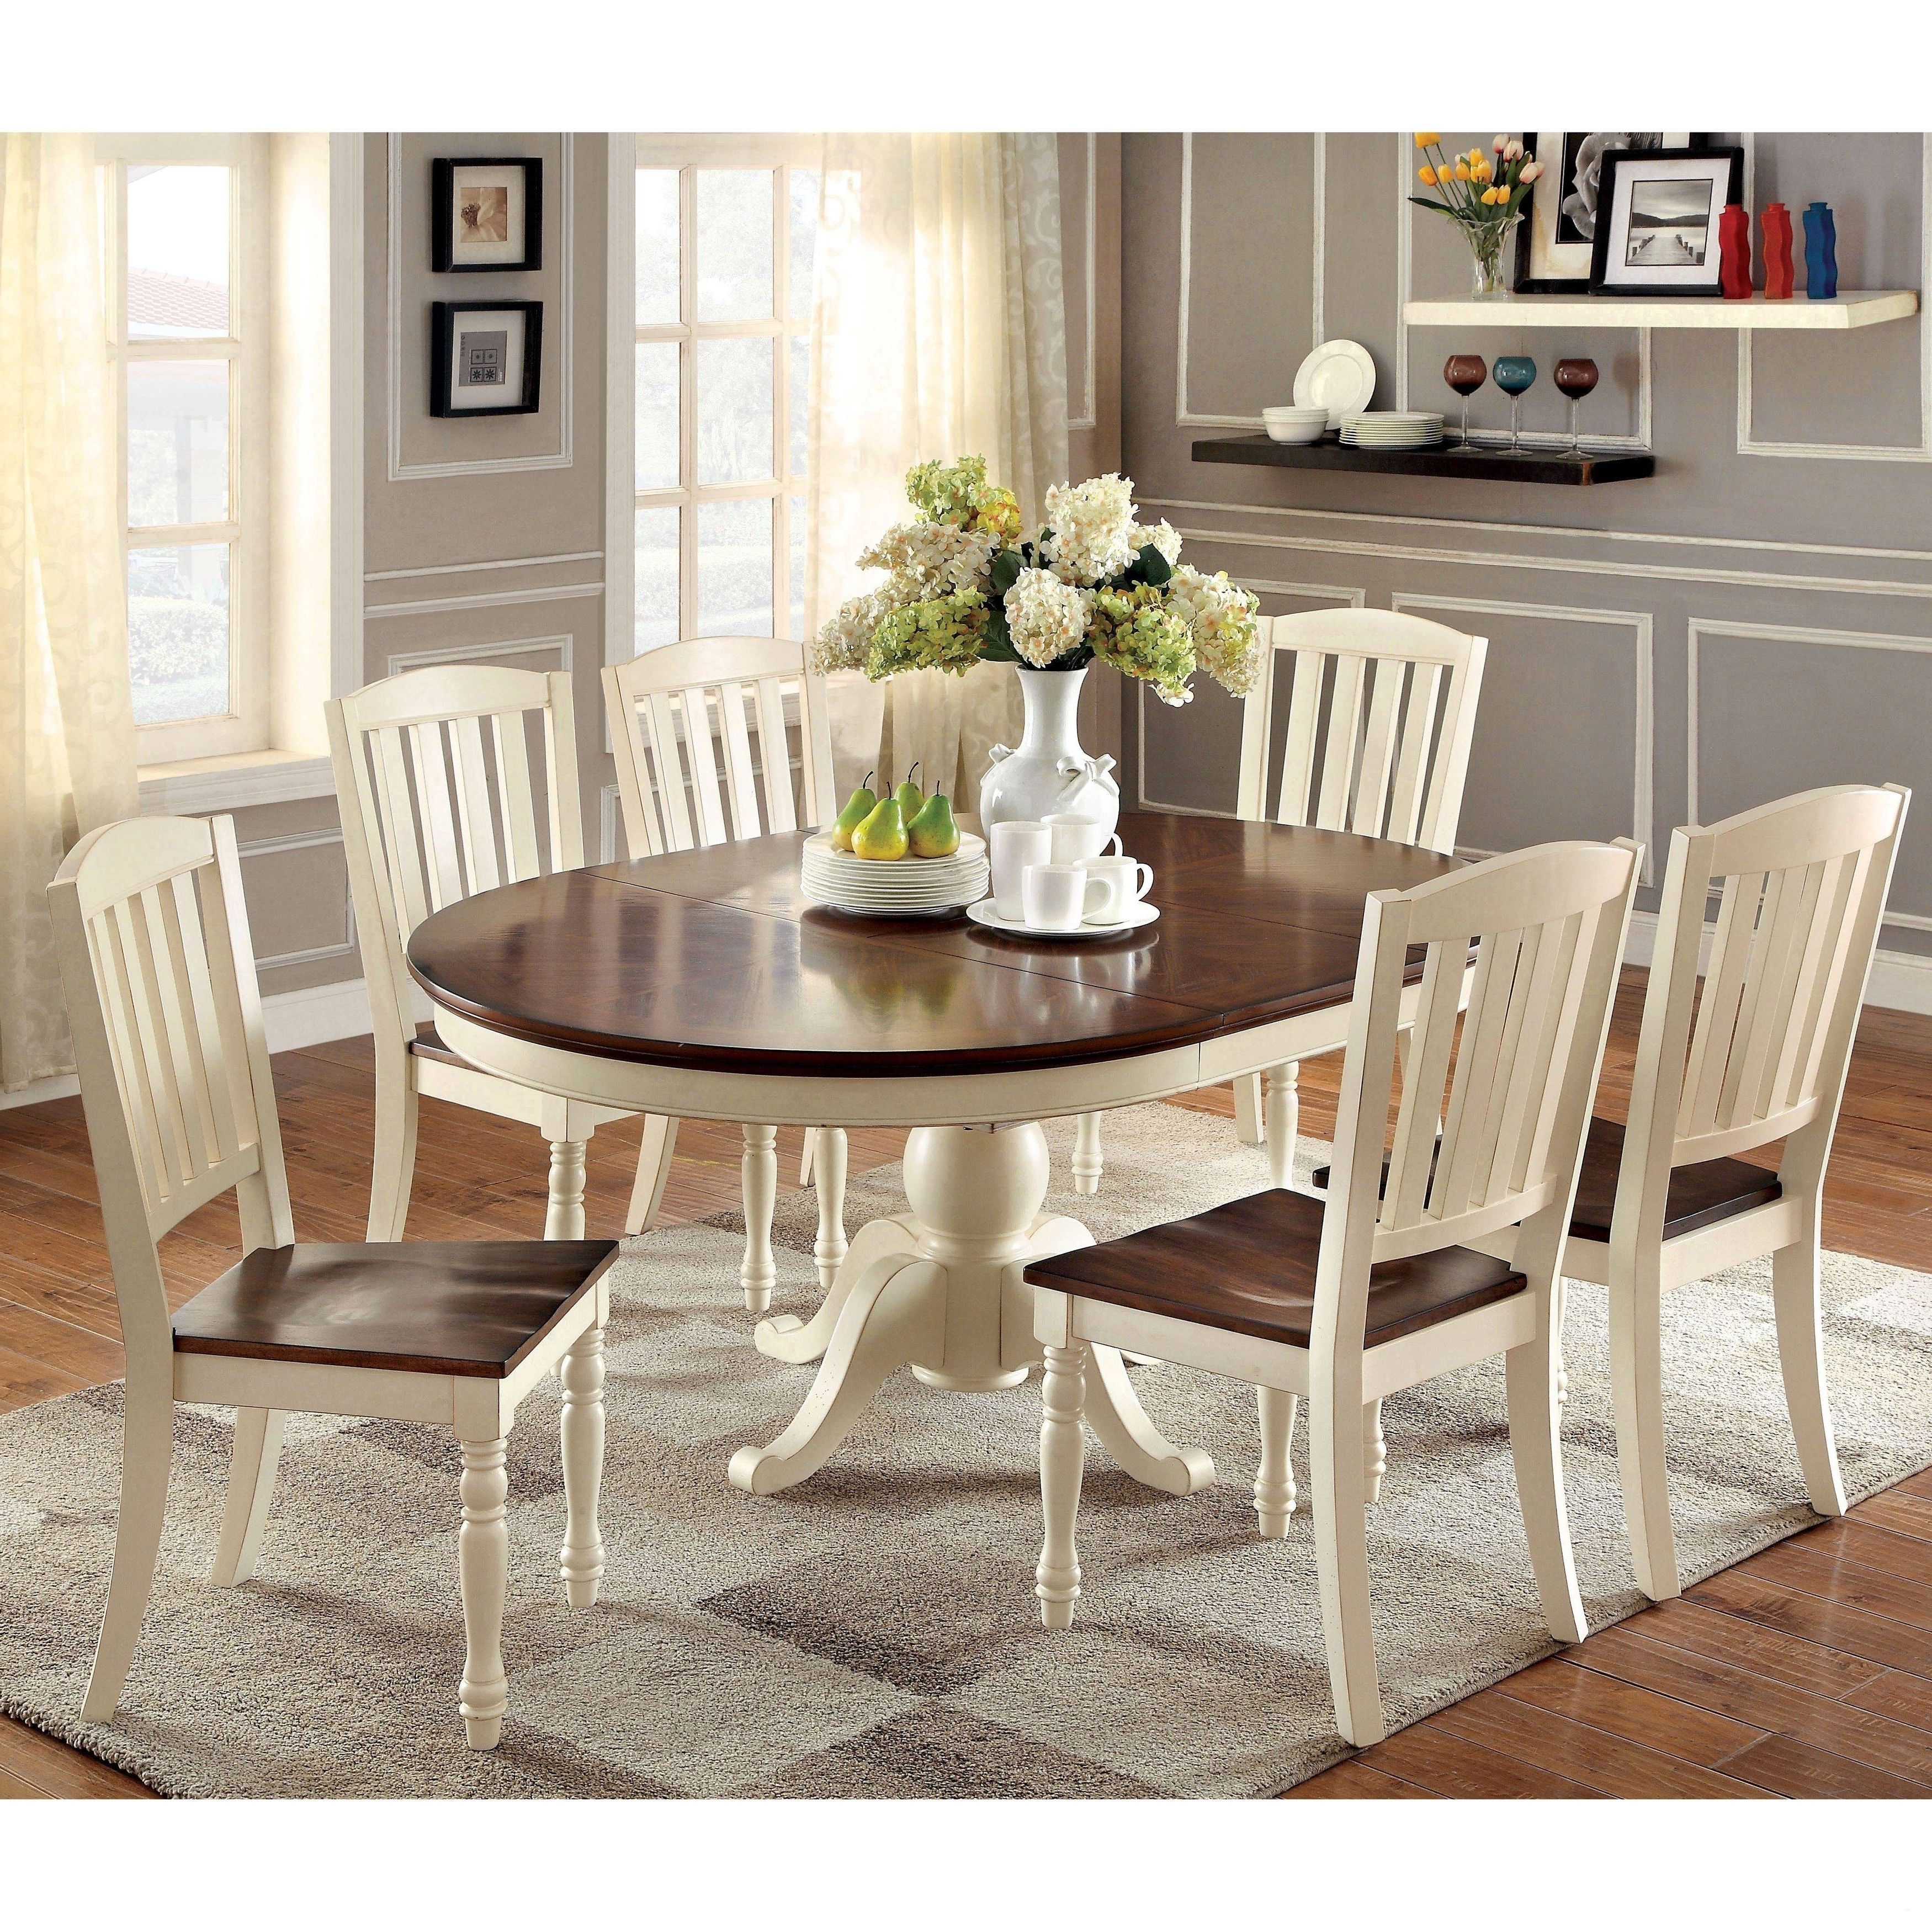 Pedestal Extending Dining Table Luxury Round Extension Dining Table Pertaining To 2018 Round Extending Dining Tables Sets (View 7 of 25)